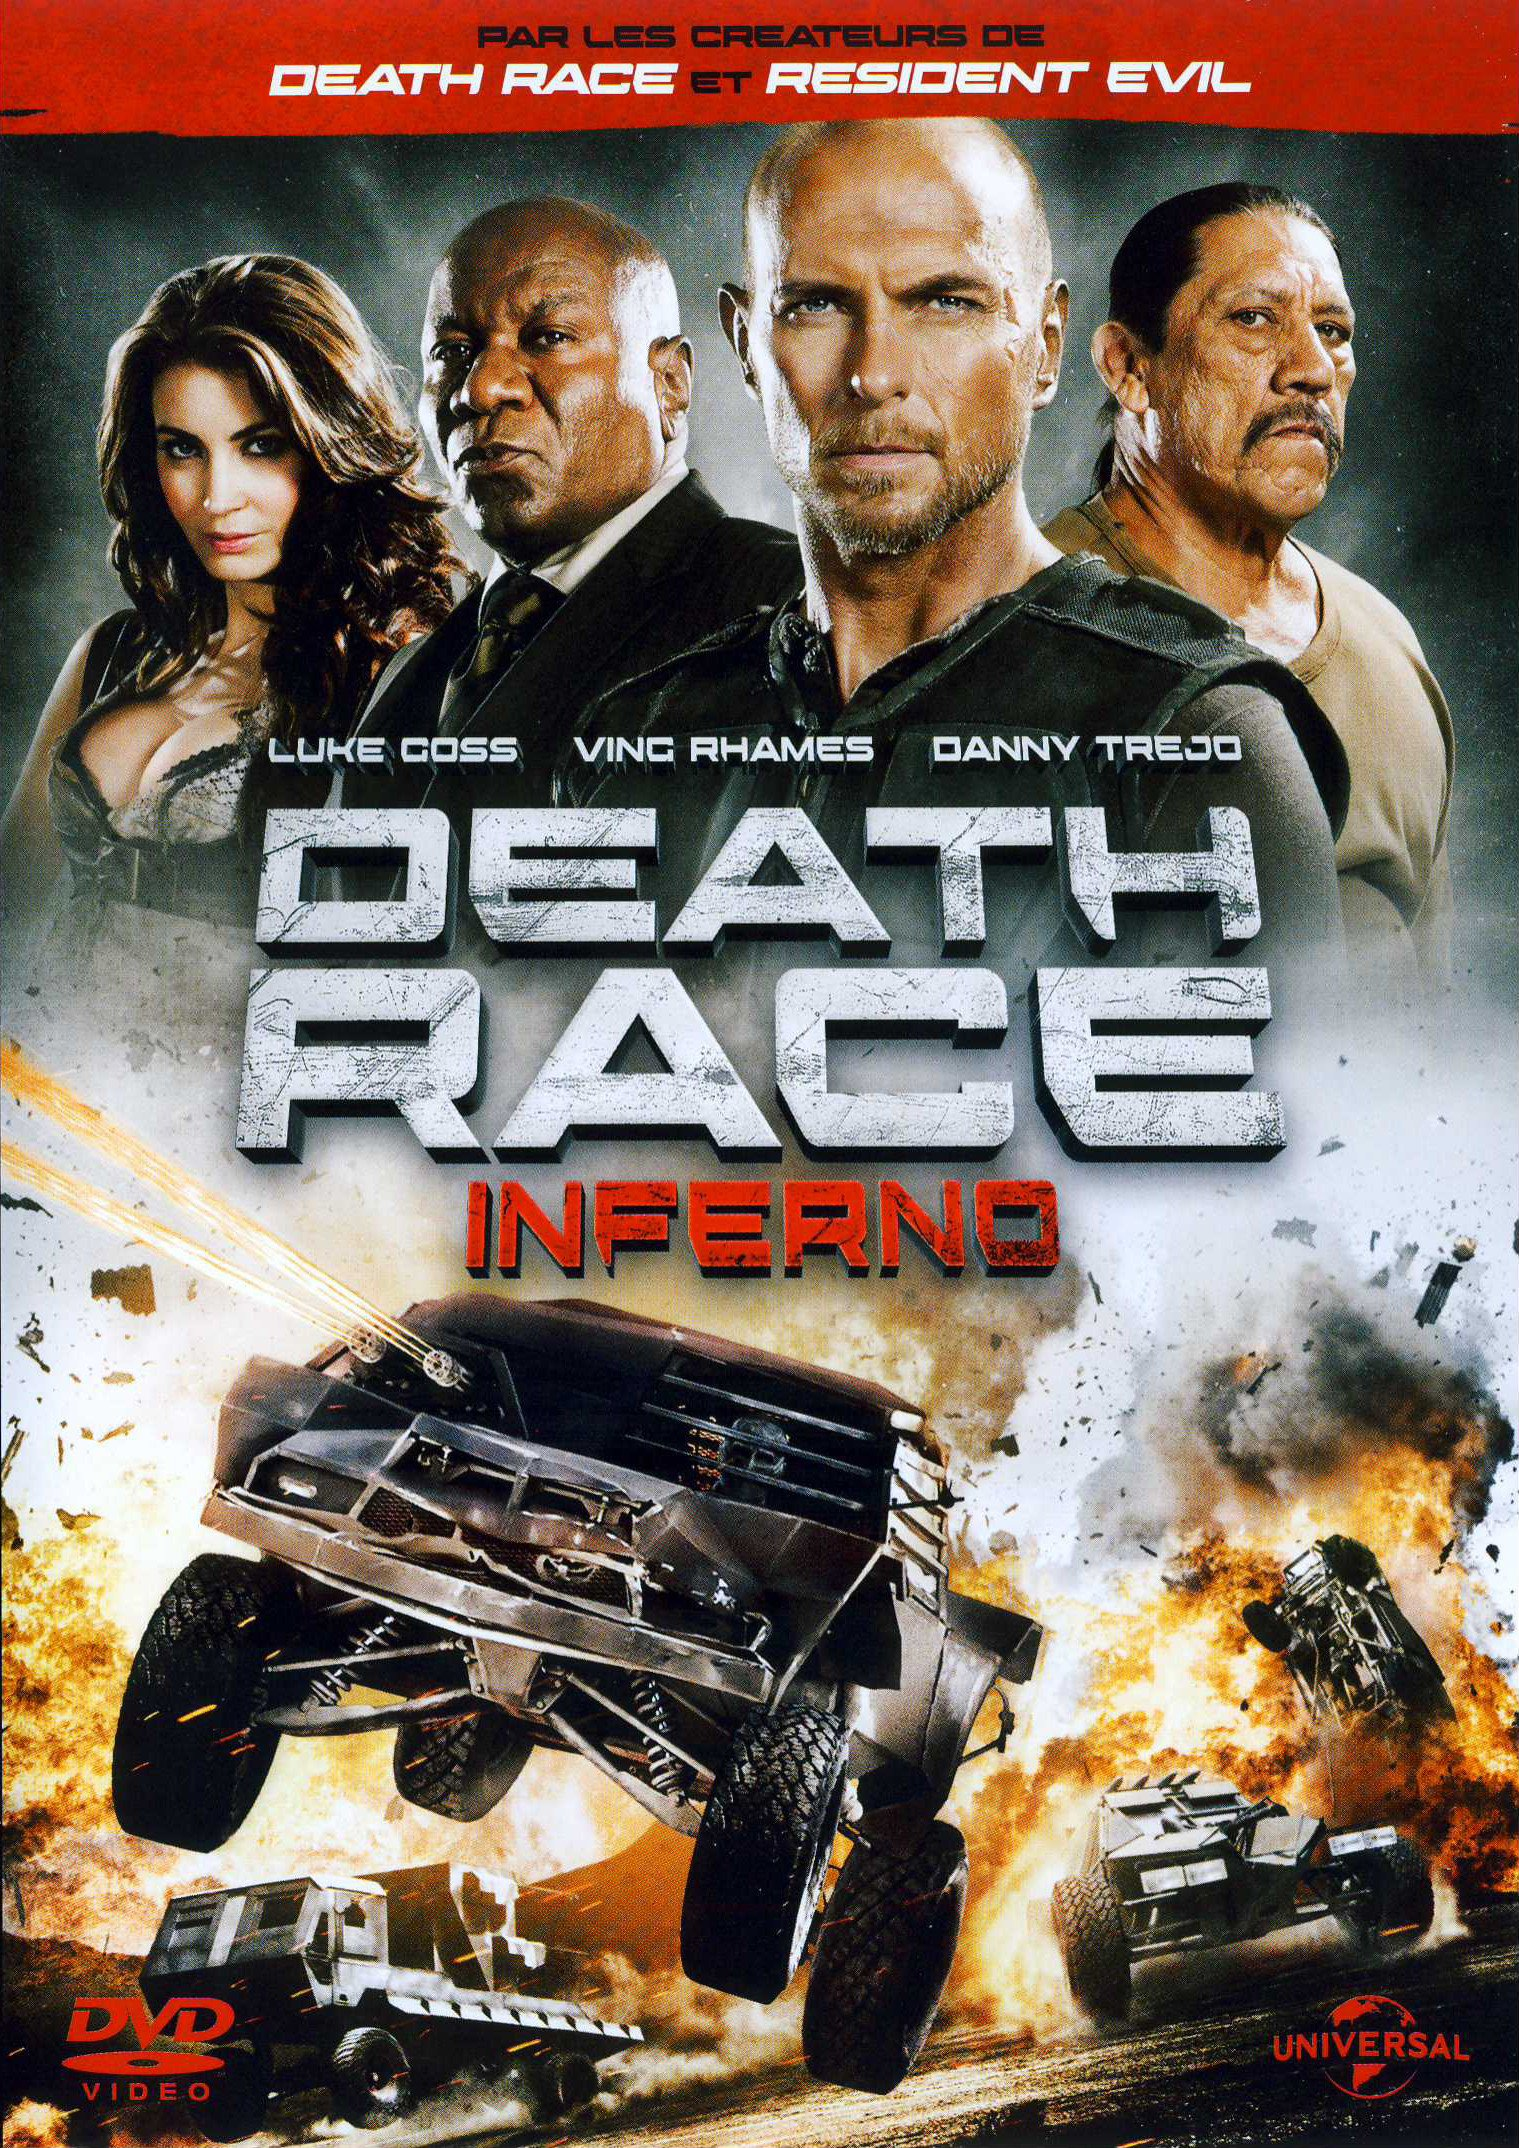 affiche du film Death Race 3: Inferno